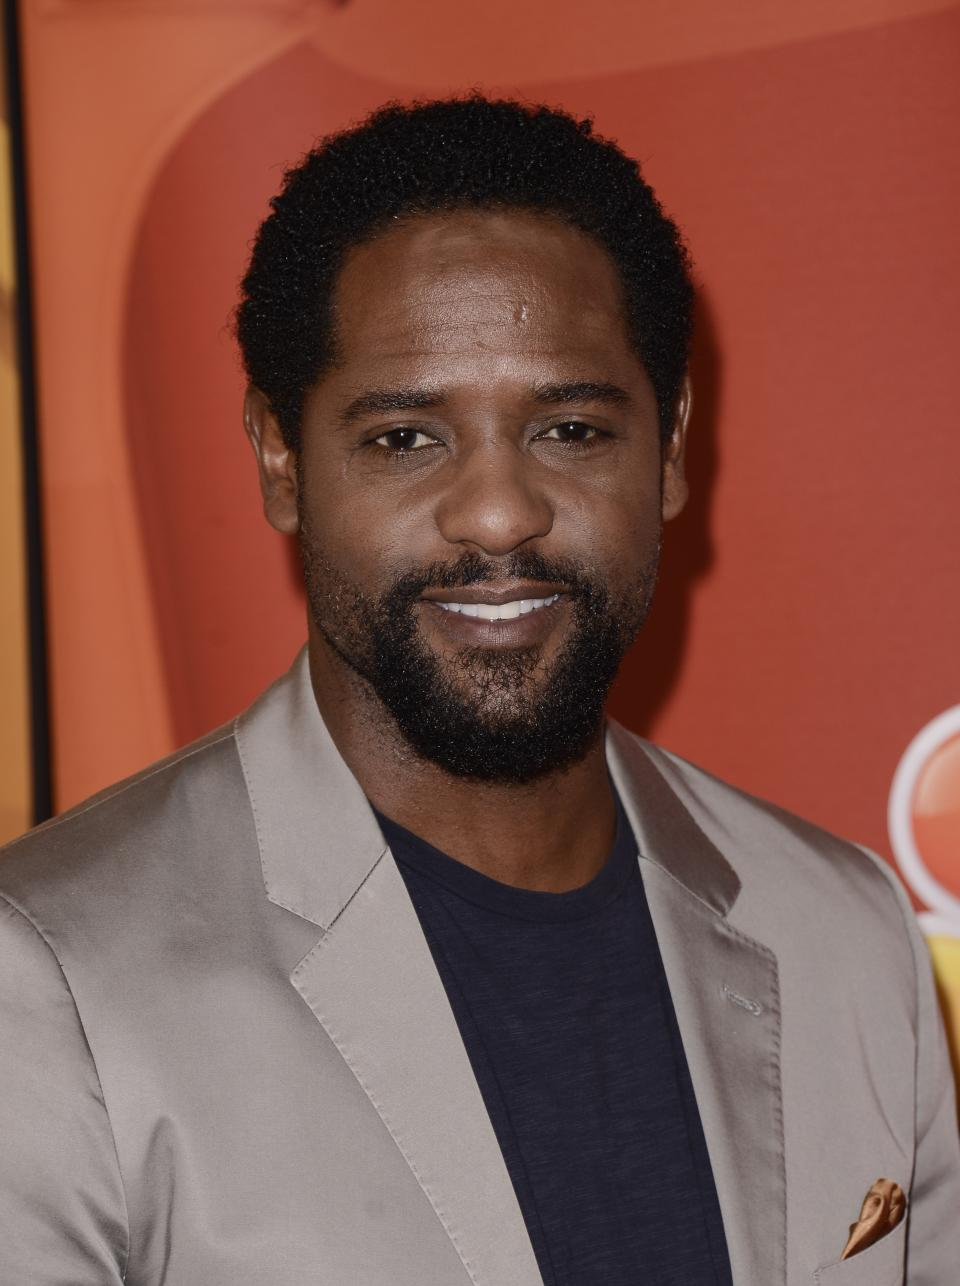 Actor Blair Underwood arrives at the NBC 2013 summer press tour at the Beverly Hilton Hotel on Saturday, July 27, 2013 in Beverly Hills, Calif. (Photo by Dan Steinberg/Invision/AP)